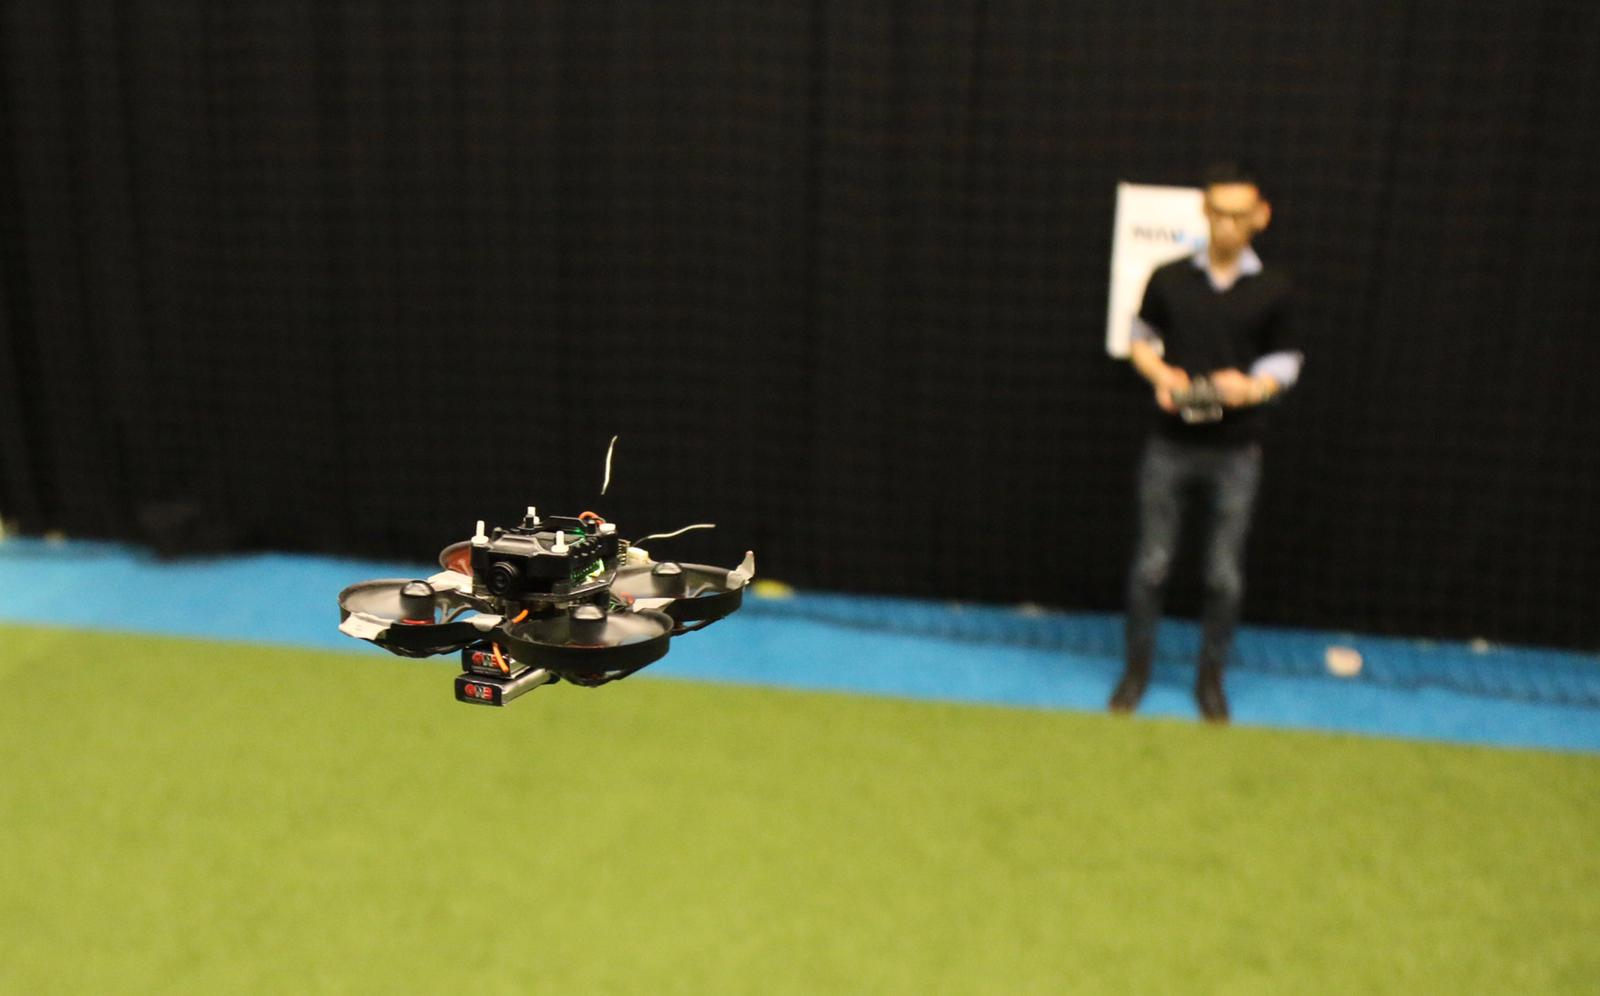 This 72-gram drone is able to race autonomously